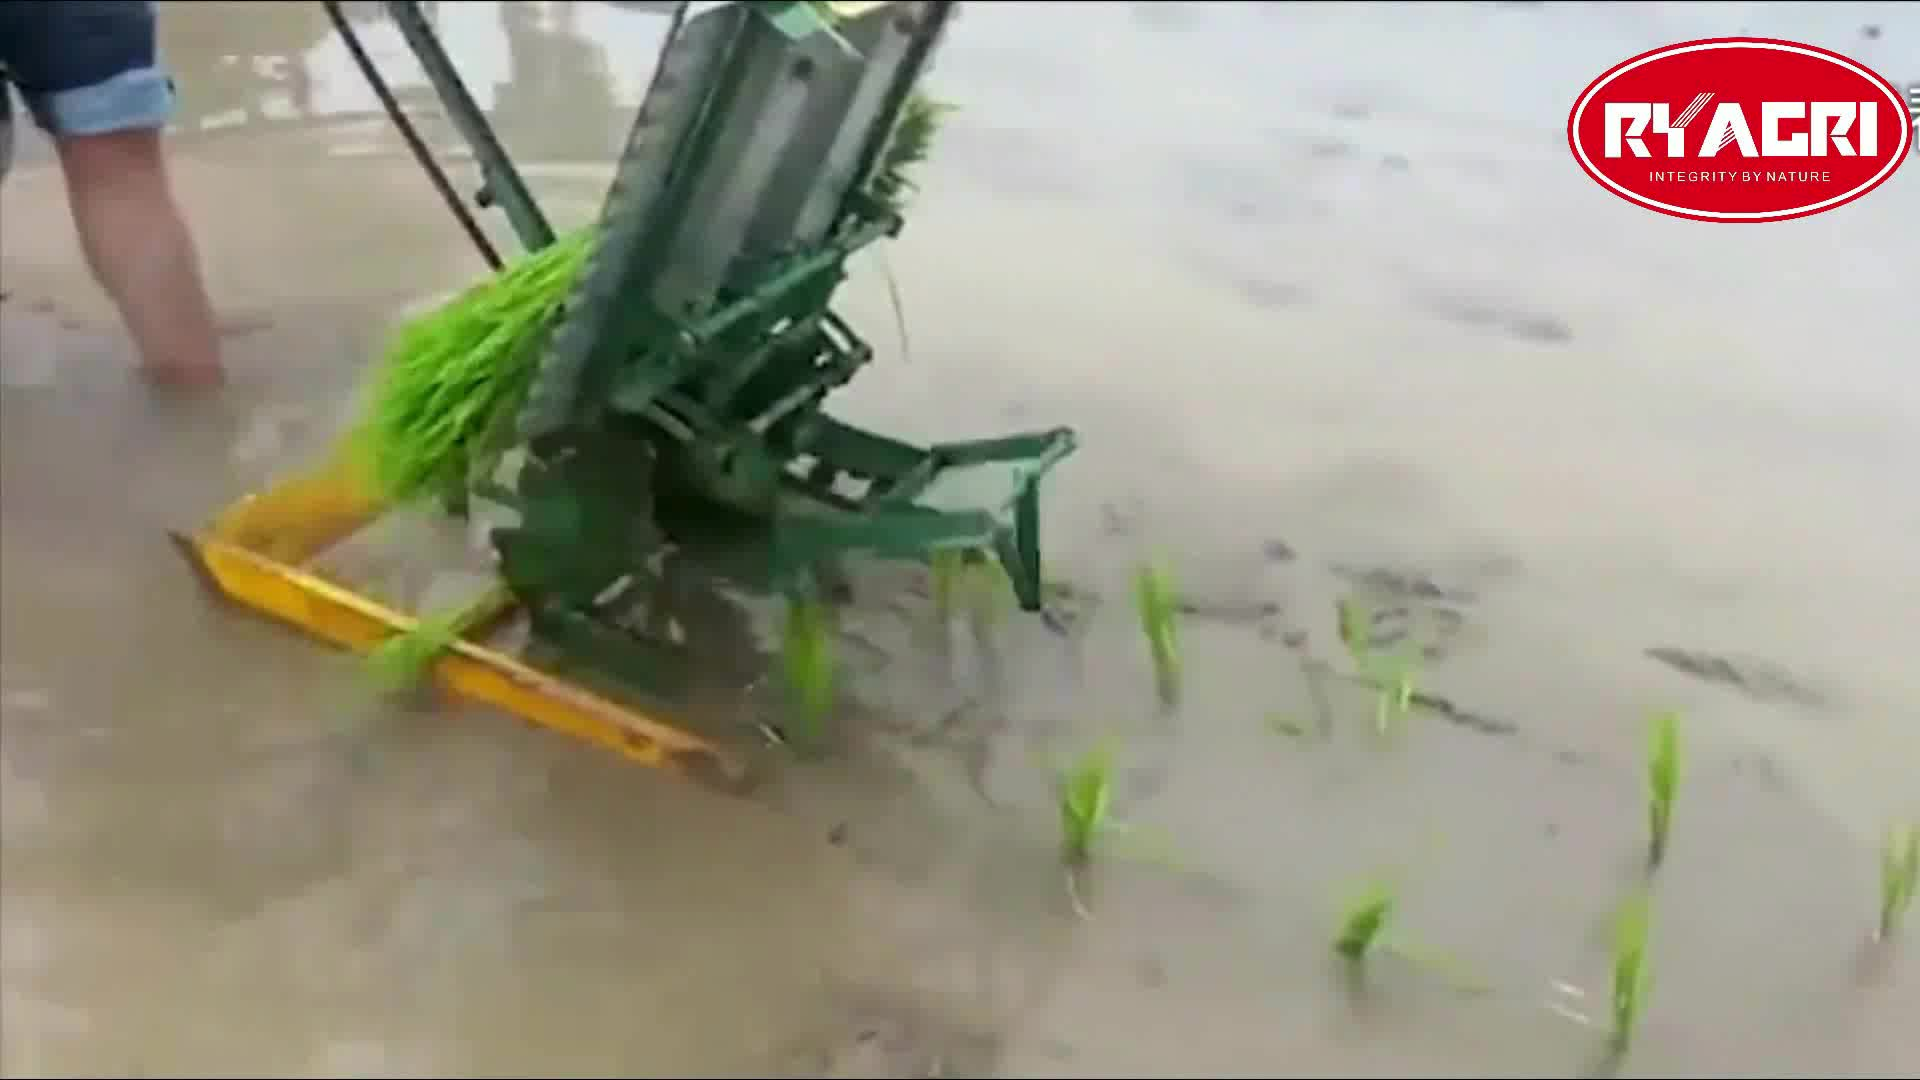 China Mini Redland Handle Type Manual Rice Transplanter For Sale In Philippines